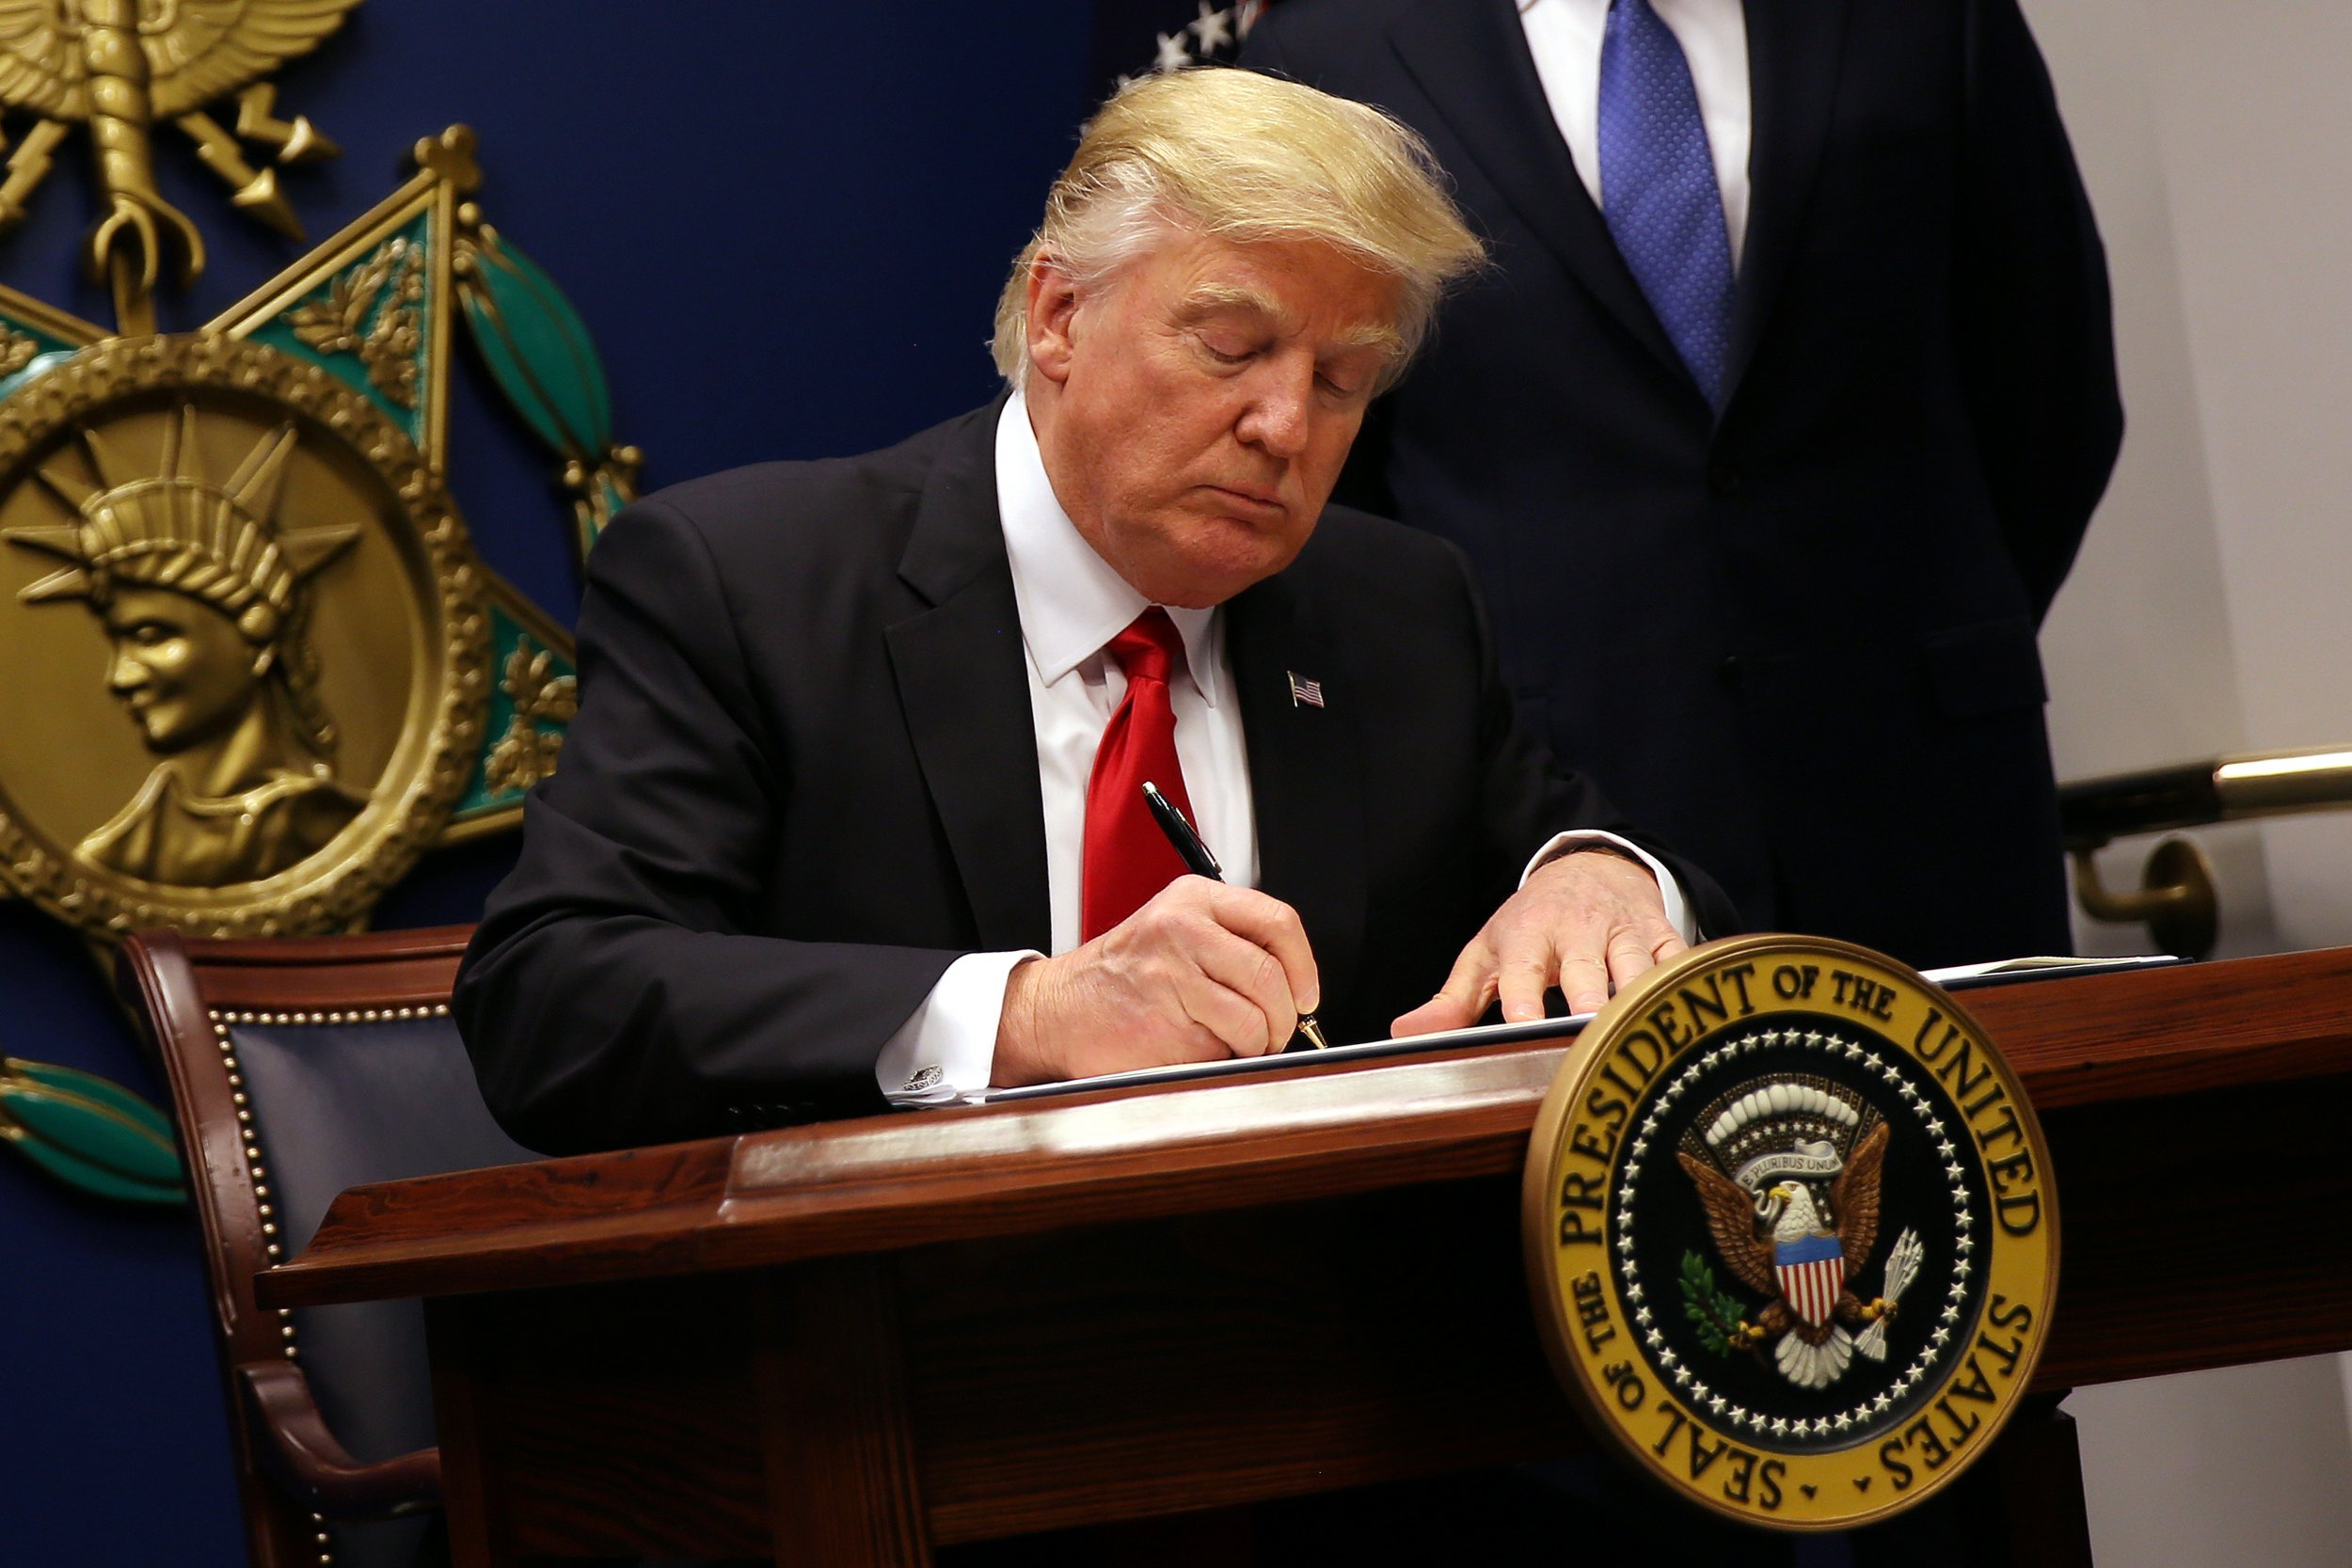 0202_Donald_Trump_executive_orders_01